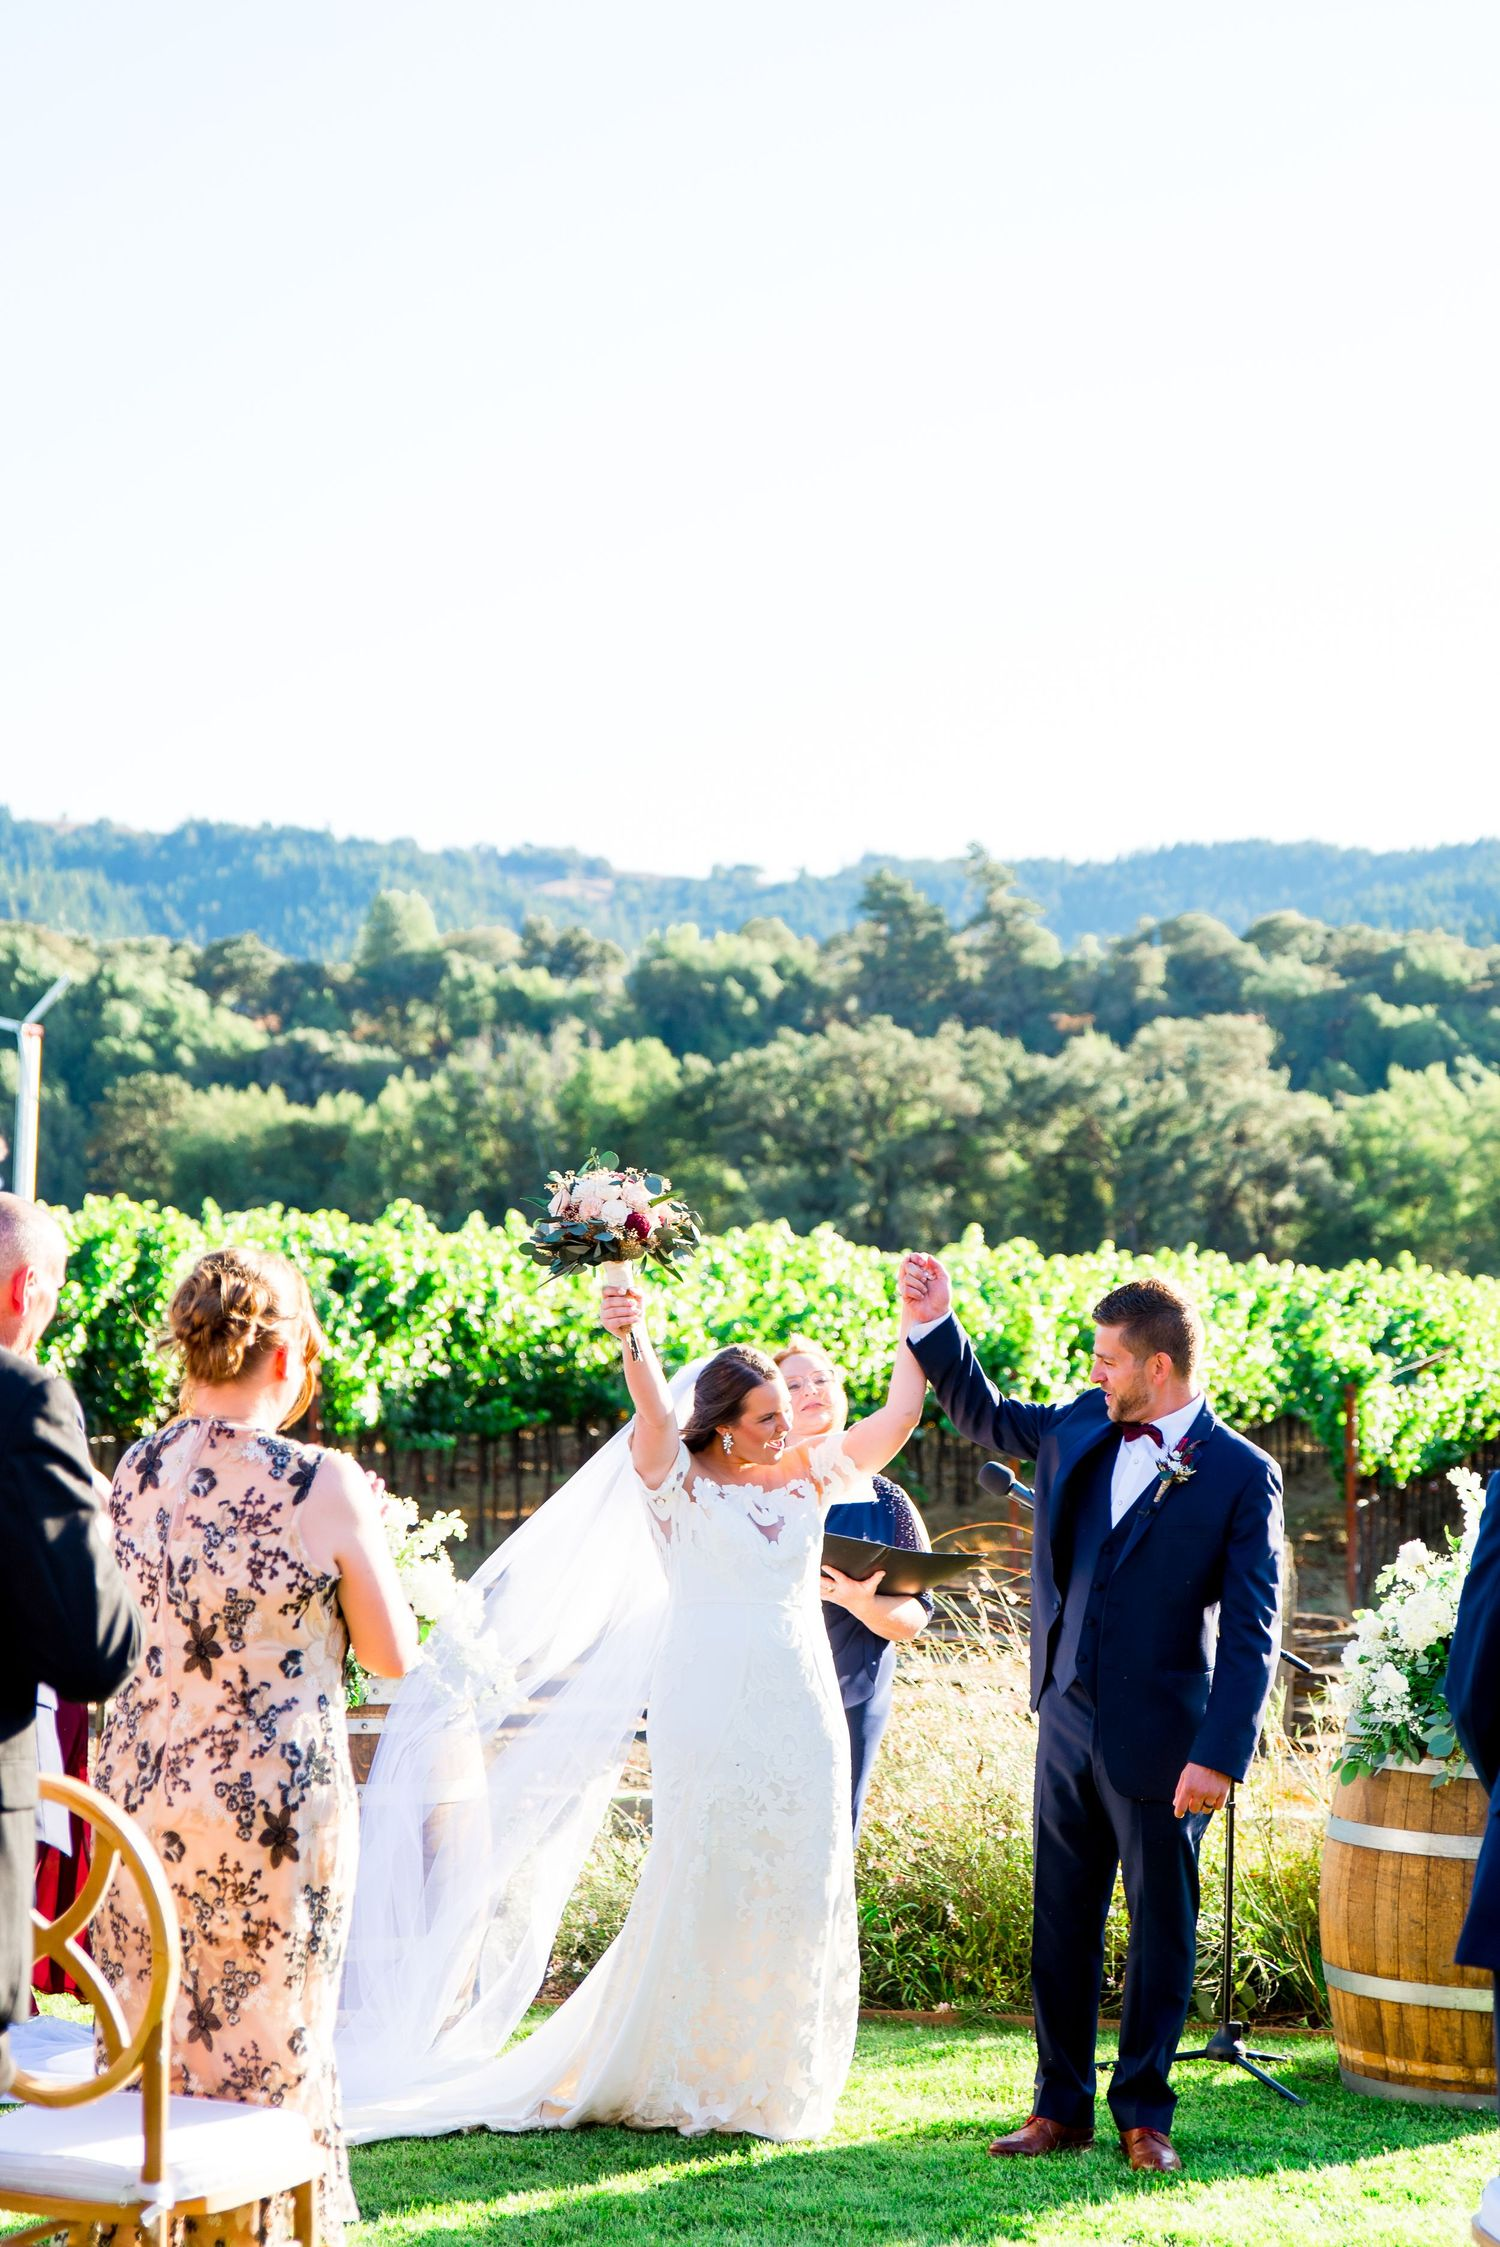 newlywed bride and groom cheering and walking down the aisle in Napa Valley California Pennyroyal Farm